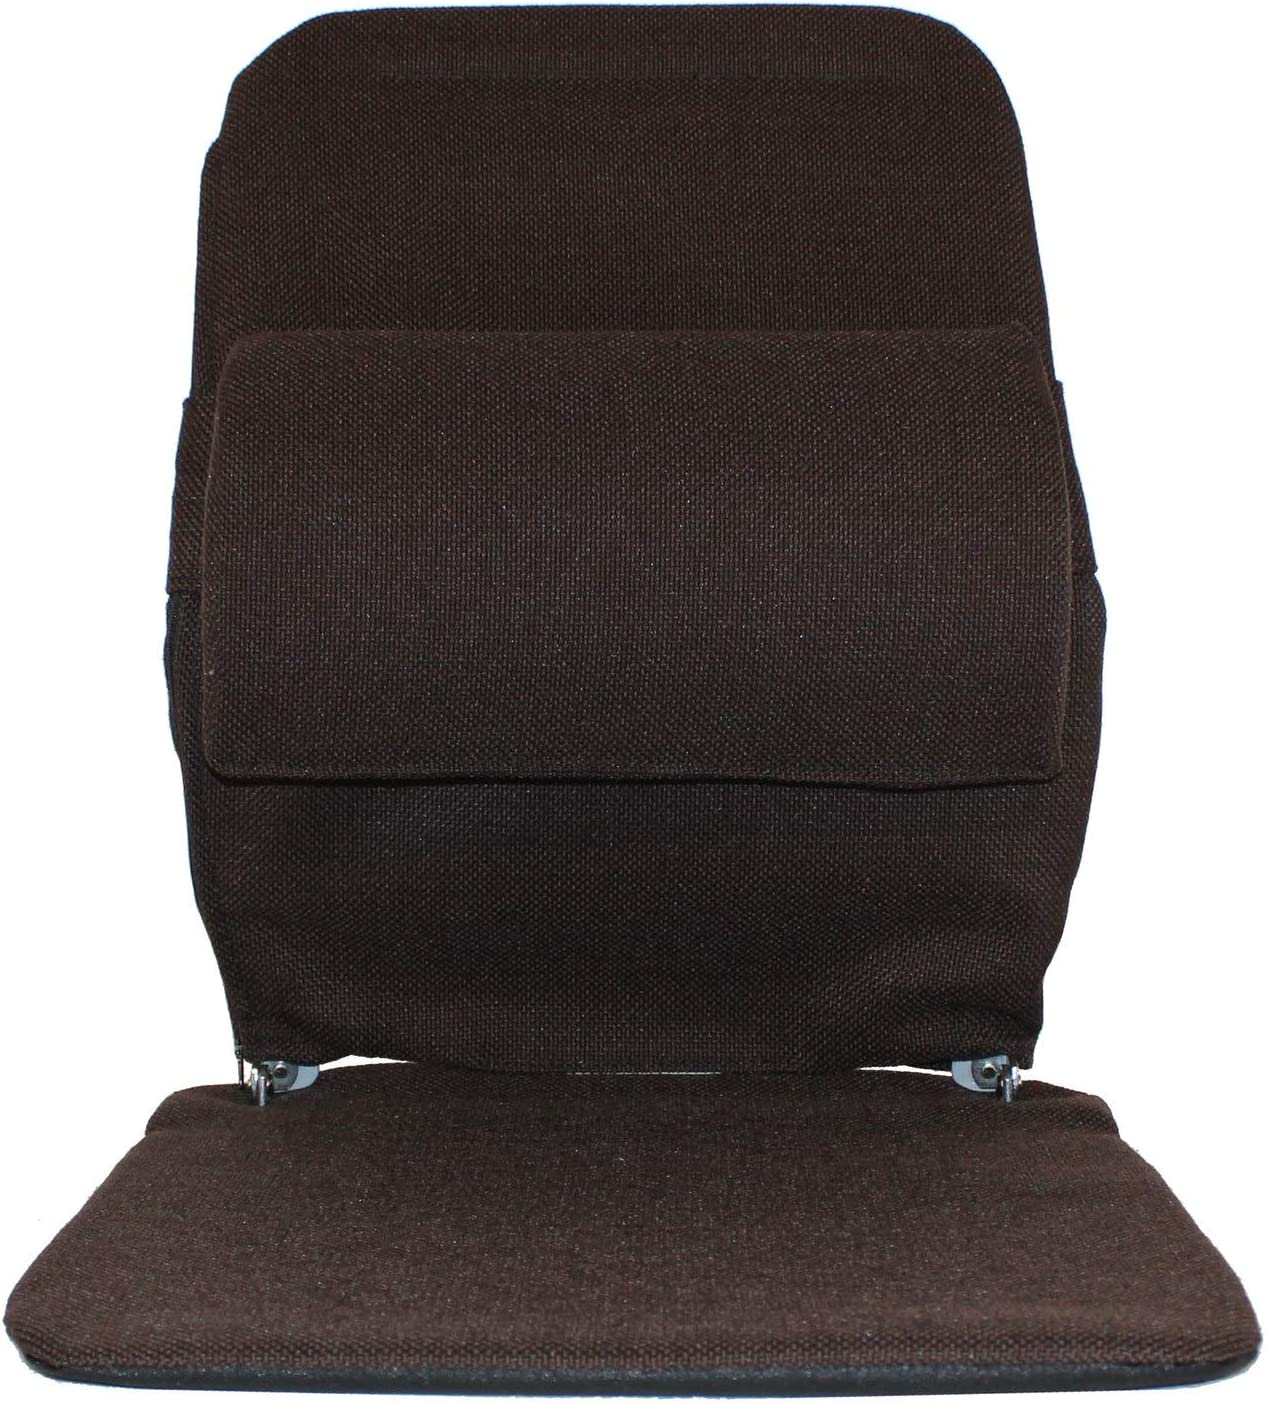 Q QUALITY BRAND COMPANY McCartys Q-BRSM-LTBRN 14 in Wide Standard Sacro-Ease Ergonomic Seat Support 16x14x19 in Light Brown Color